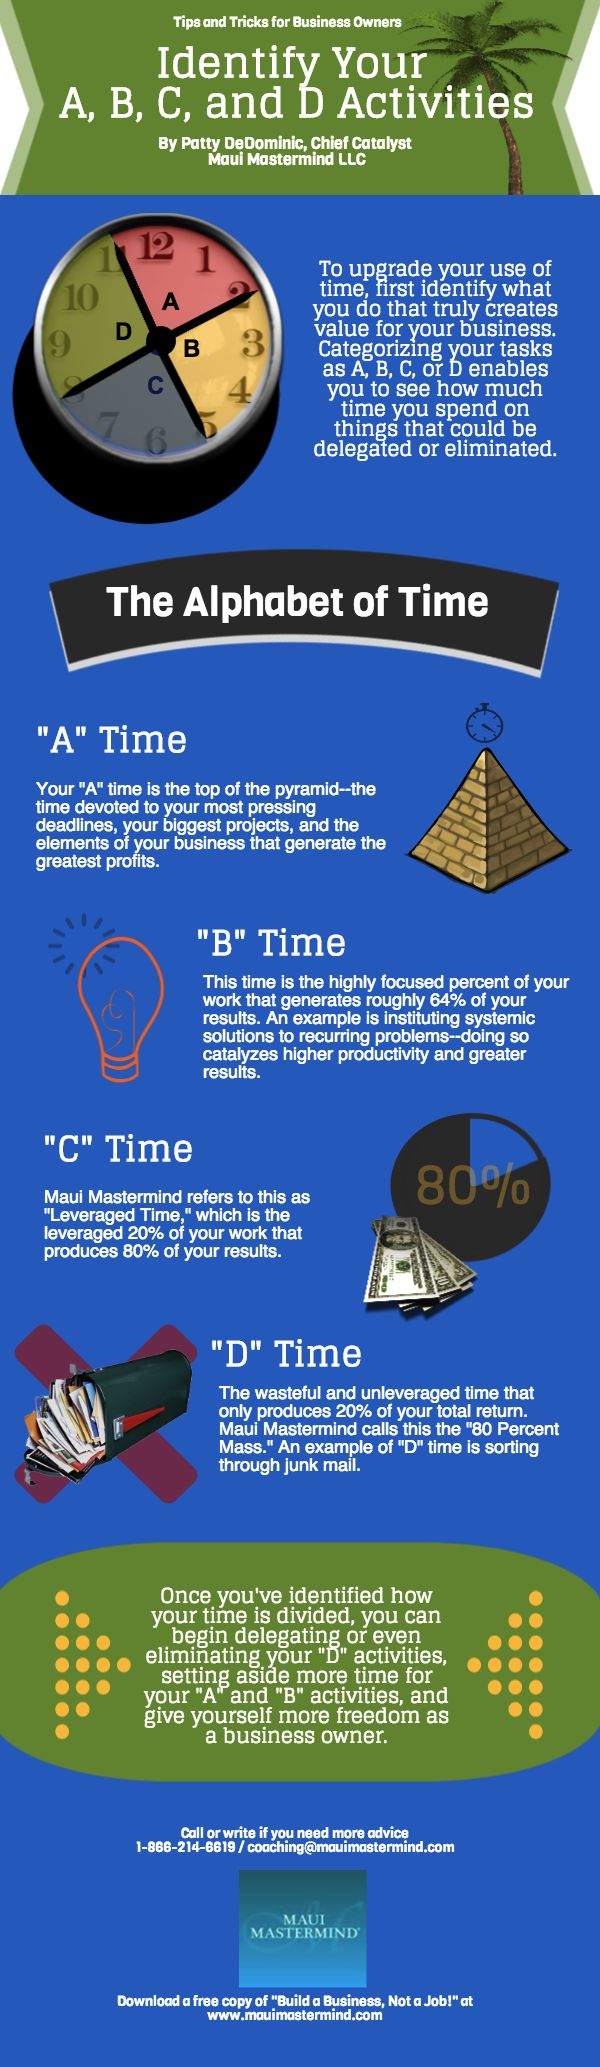 "Download a FREE copy of ""Build a Business, Not a Job!"" at www.mauimastermind.com #mauimastermind #business #infographic #scale #grow #rich #wealth #tips #tricks #format #package #system #alphabet #time #management #activity: Building"